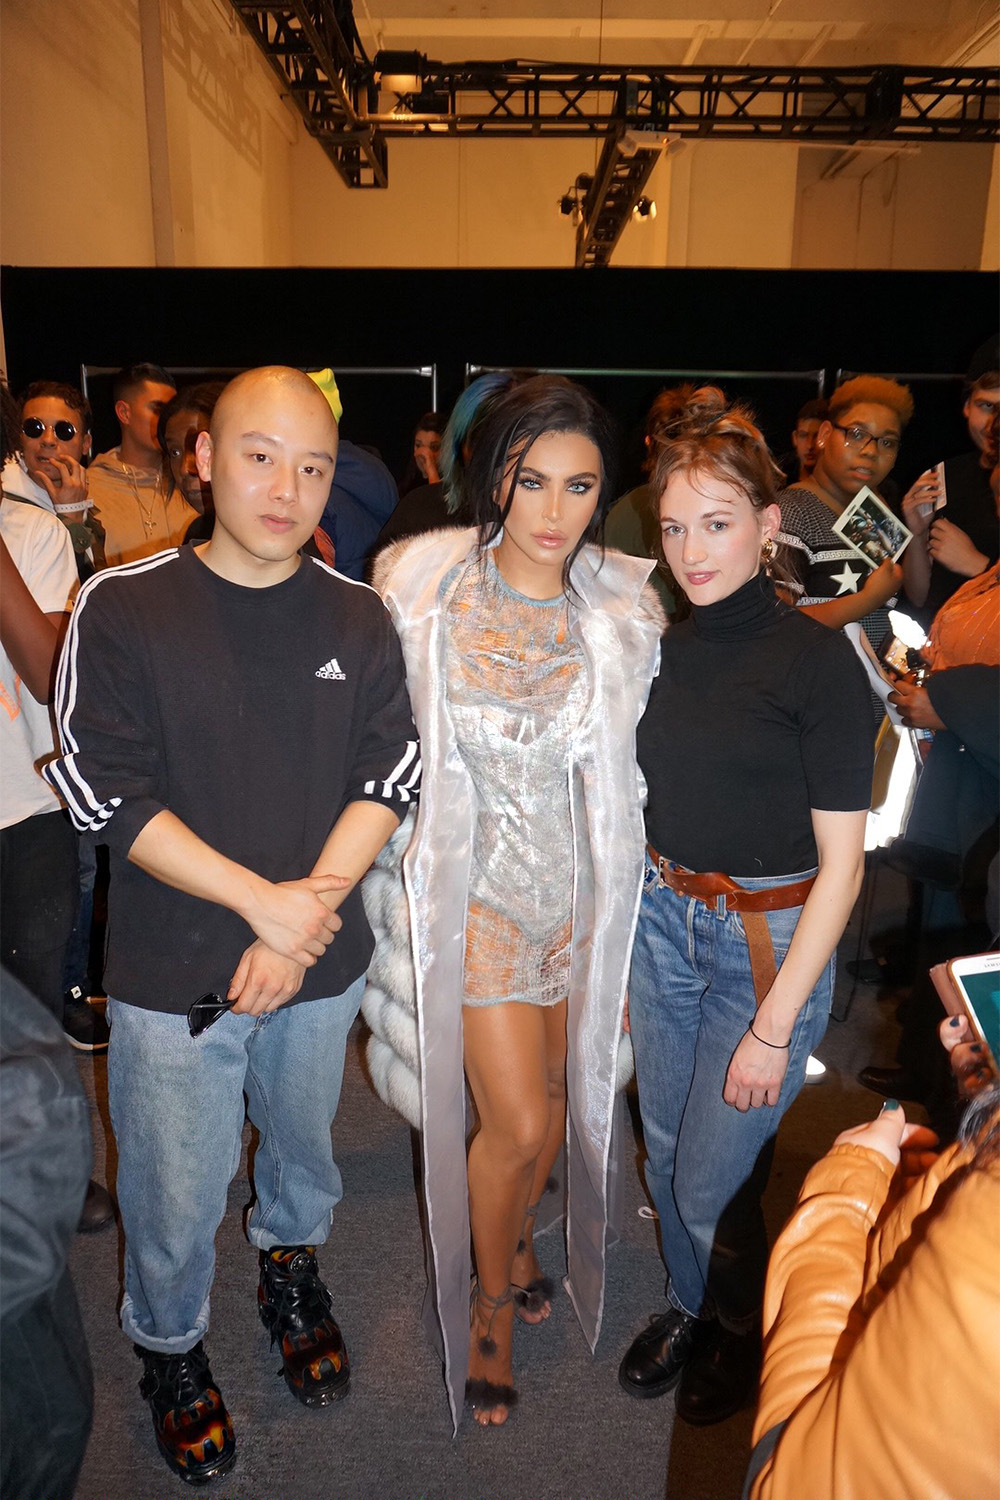 hbz-hrush-nyfw-backstage-at-the-namilia-show-with-designers-nan-li-and-emilia-pfohl.jpg